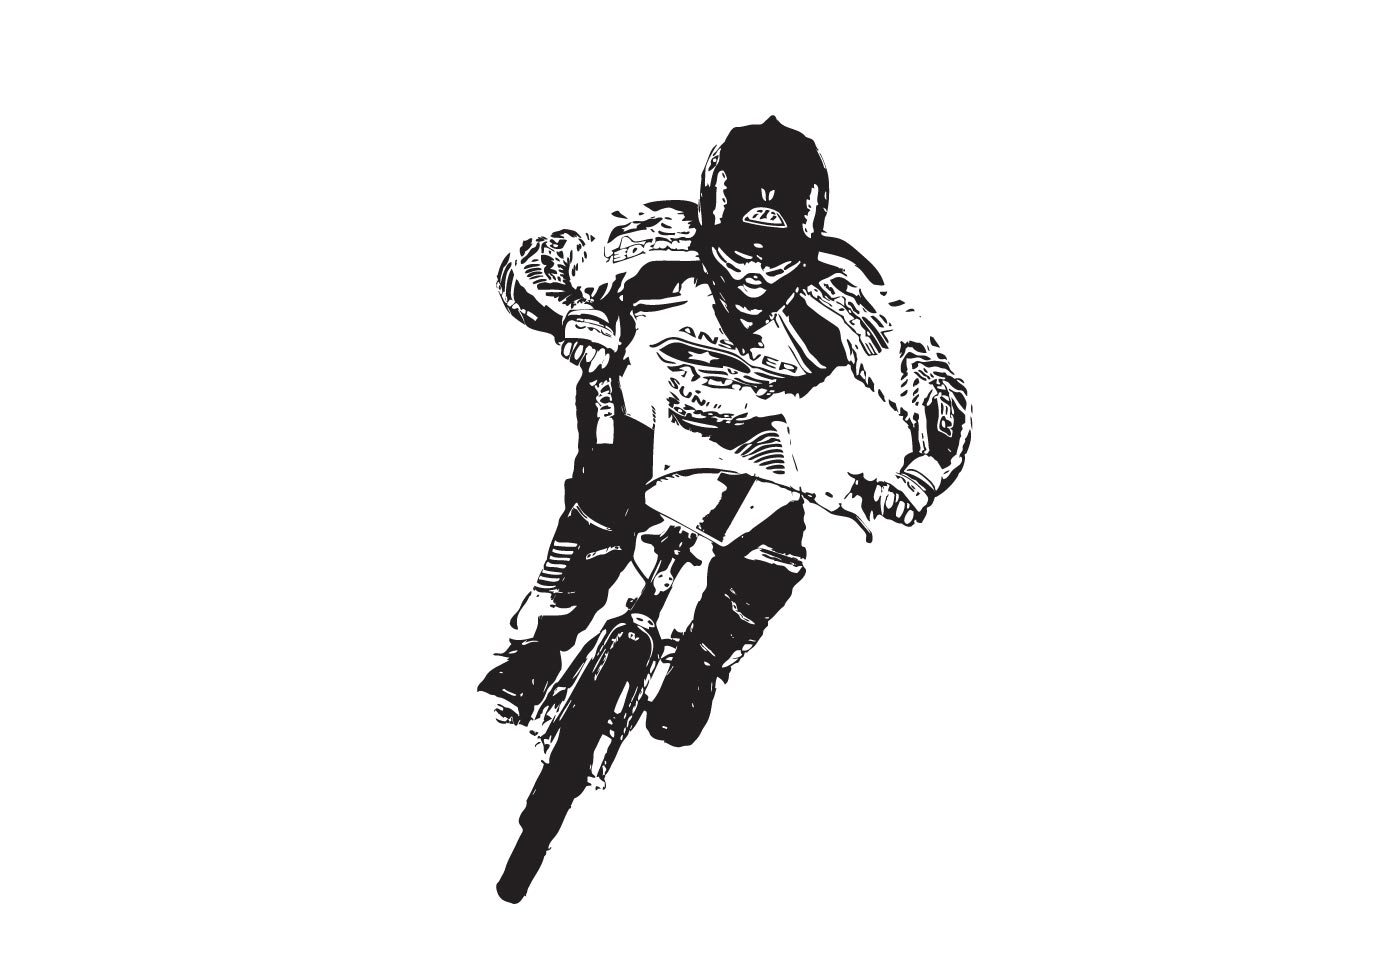 BMX-racer - Download Free Vector Art, Stock Graphics & Images